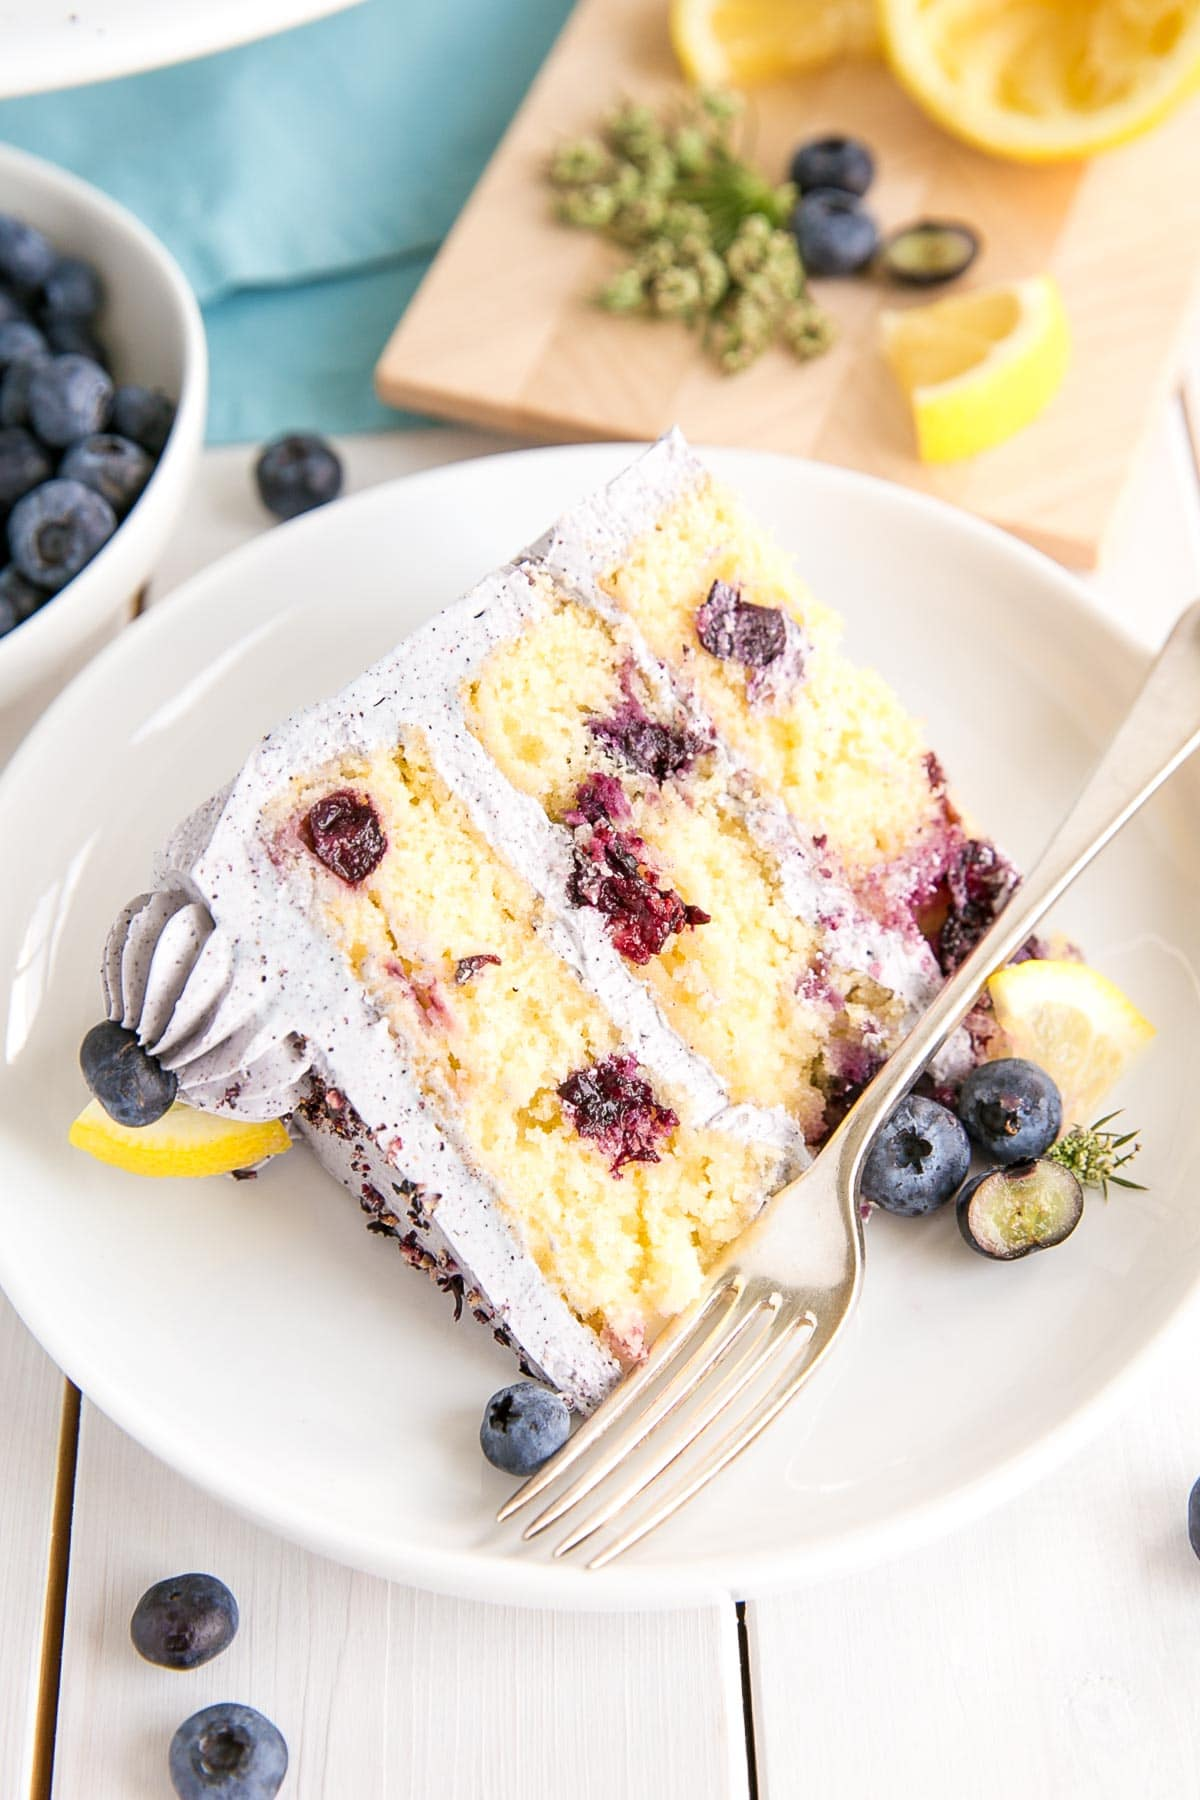 Slice of lemon blueberry cake with blueberry buttercream